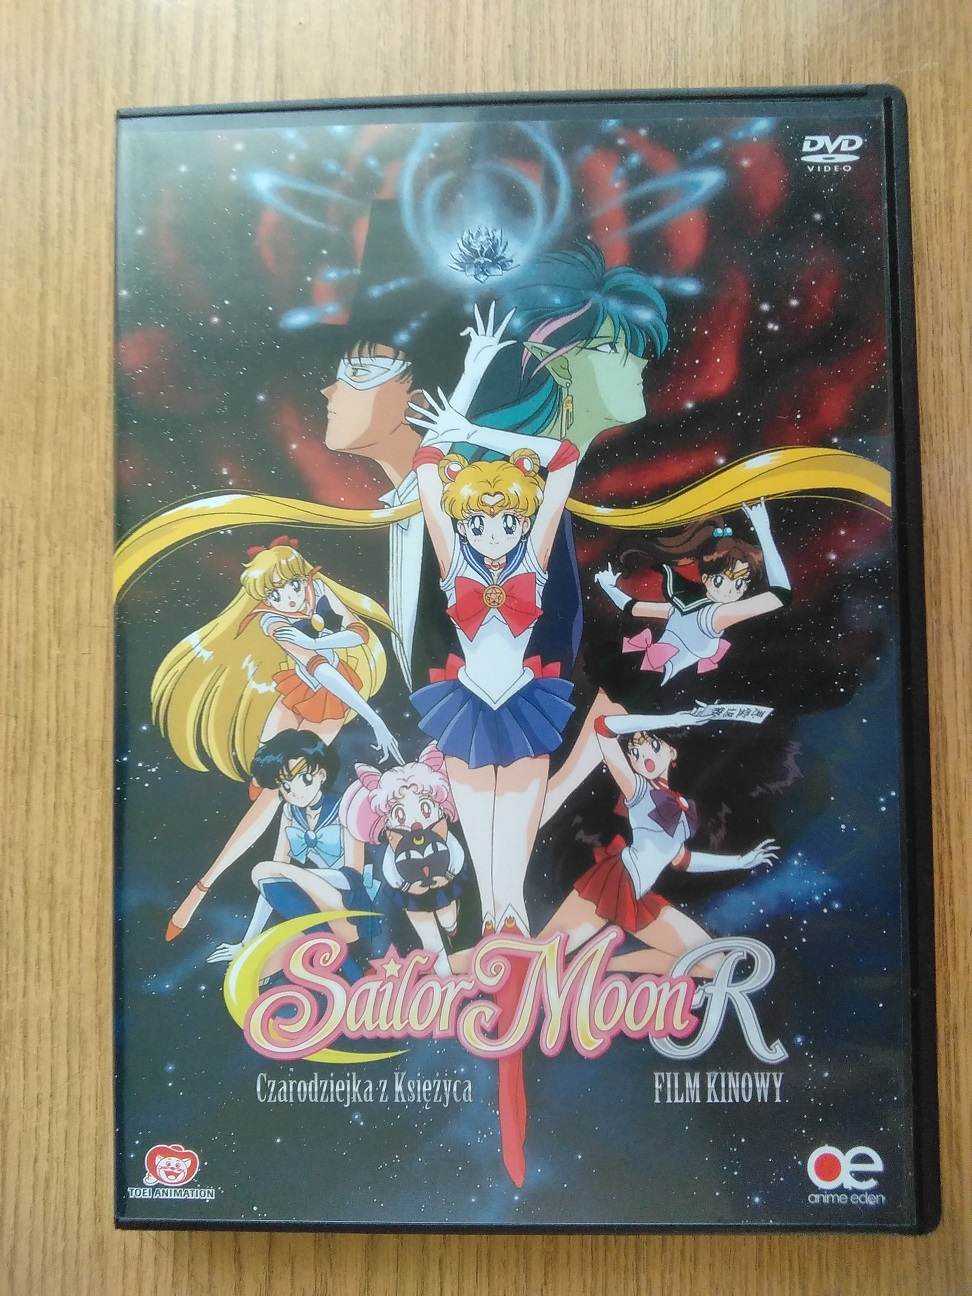 Sailor Moon R film kinowy.jpg